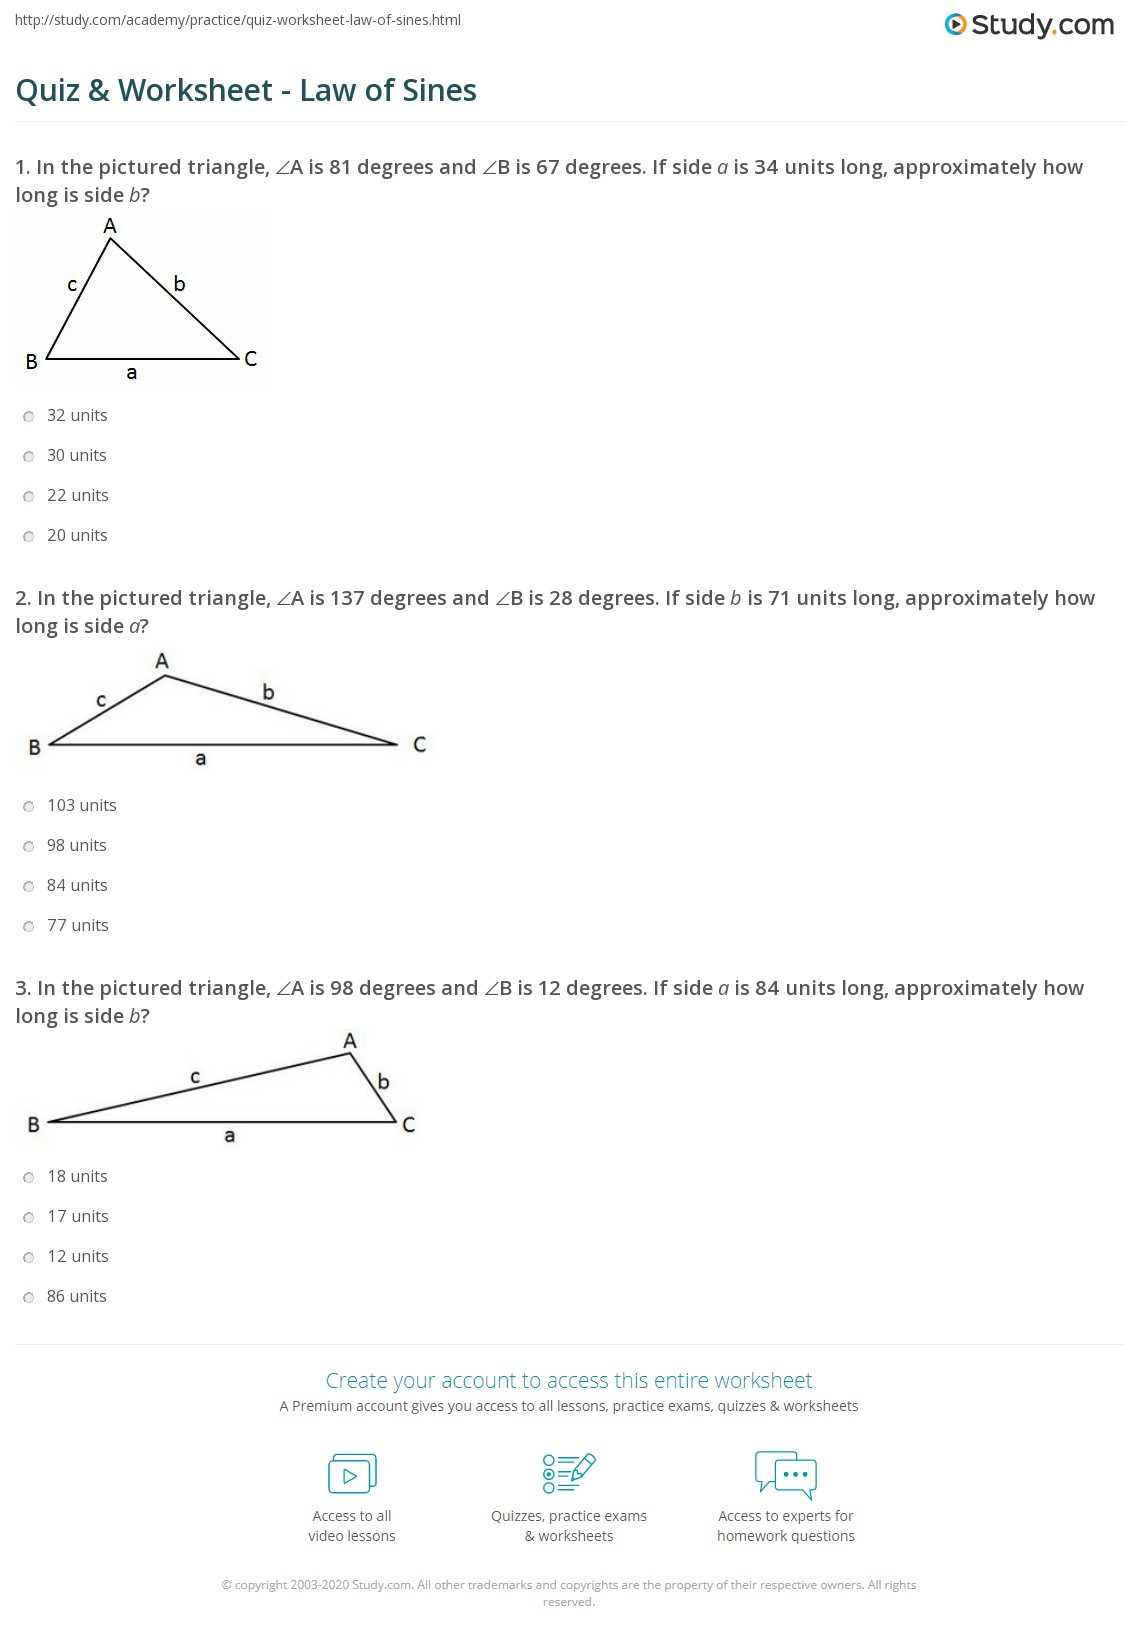 Free Worksheet Law Of Sines Worksheet quiz worksheet law of sines study com print definition and application worksheet